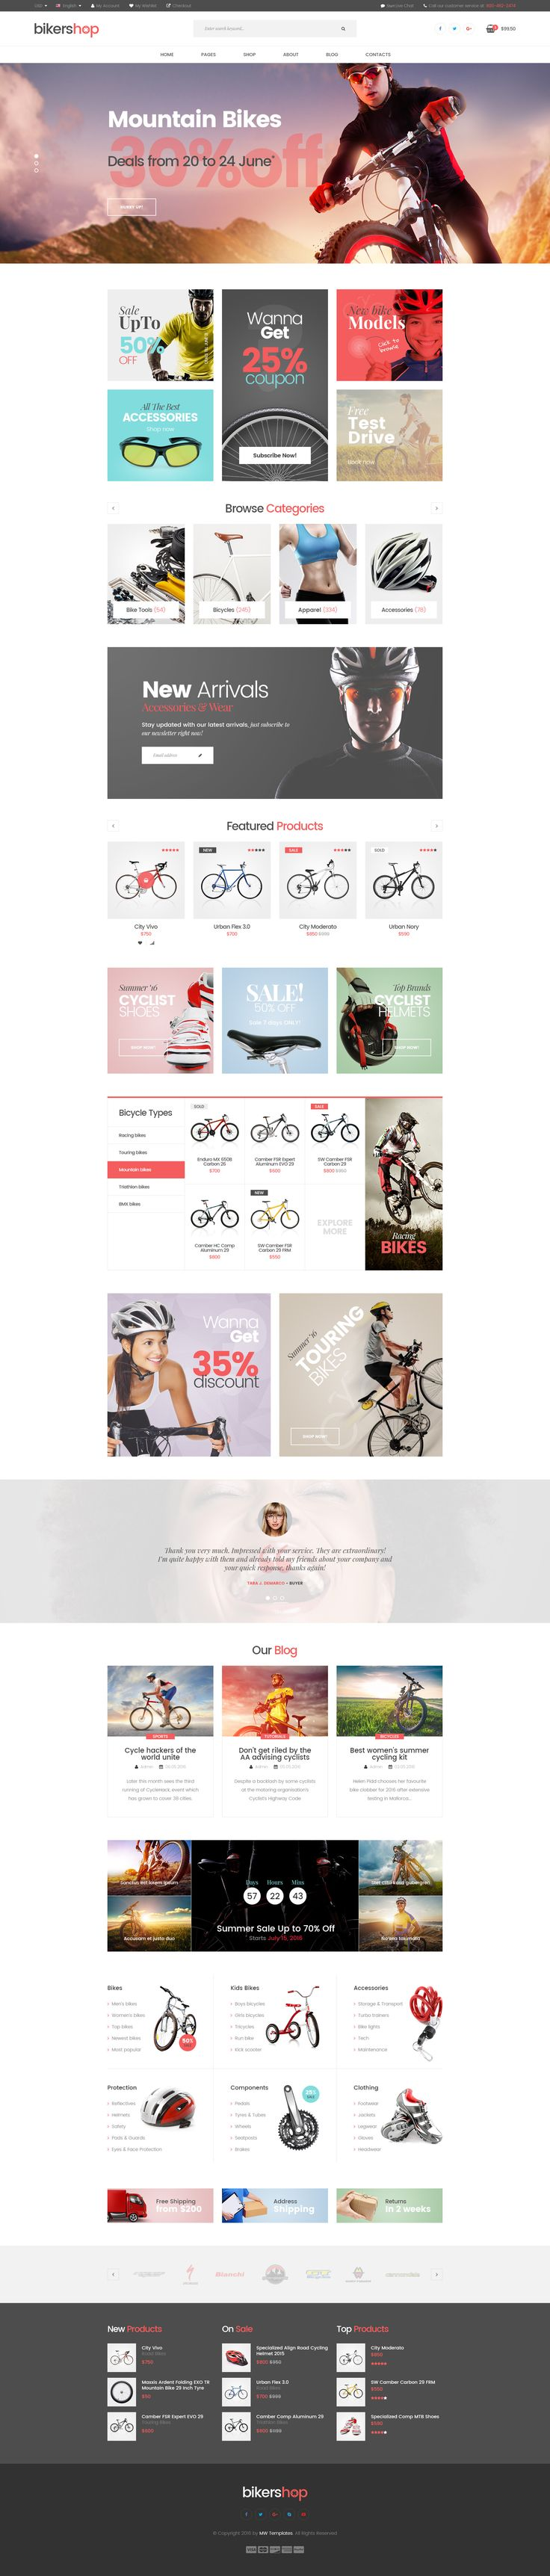 Biker Shop - premium PSD template • Download ➝ https://themeforest.net/item/biker-shop-premium-psd-template/16757338?ref=pxcr